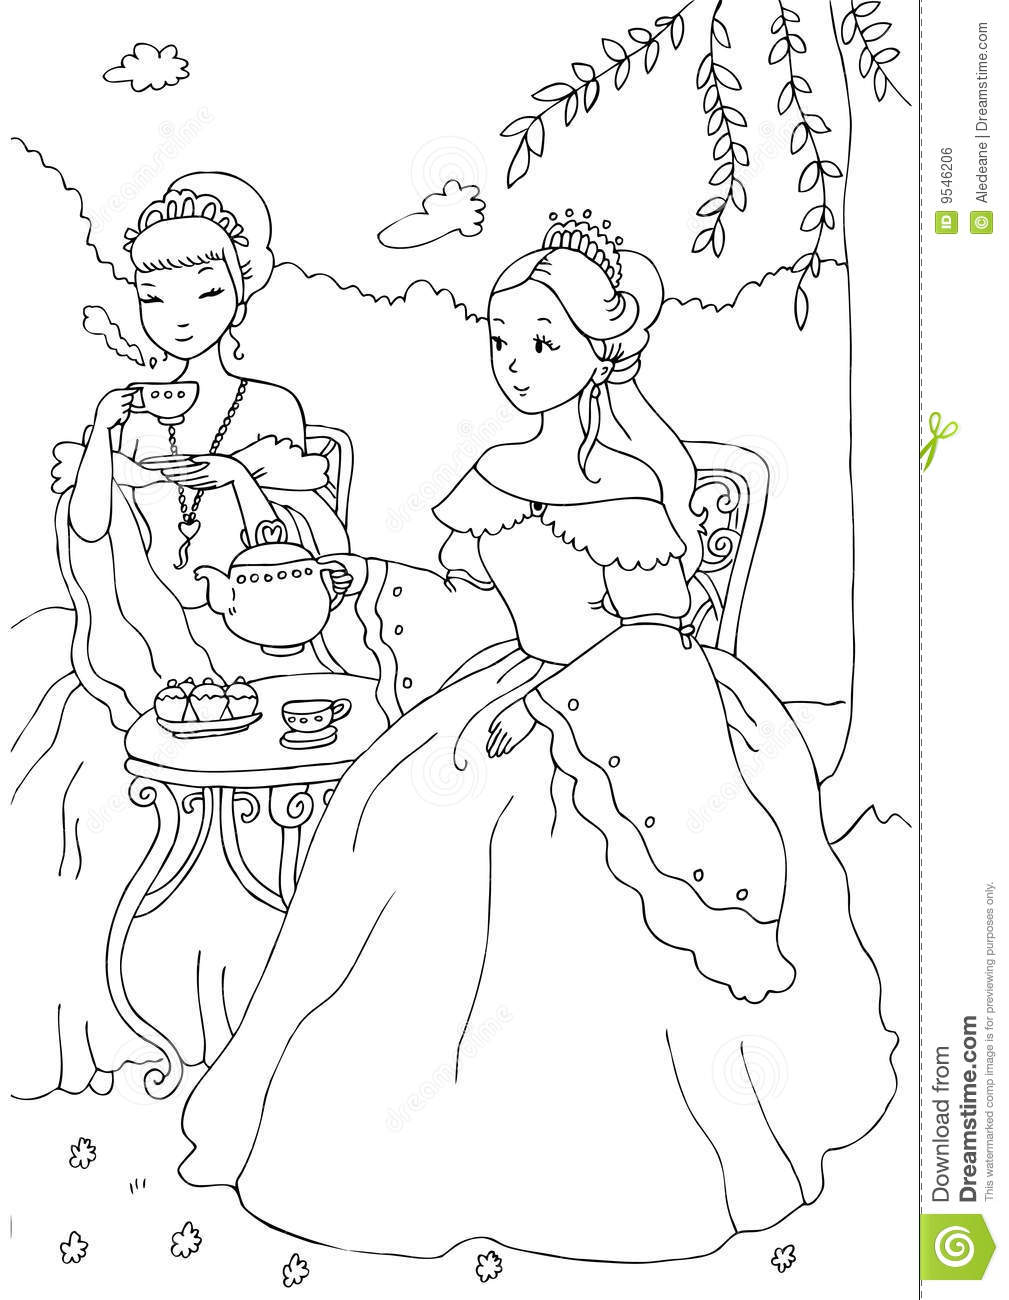 Tea Party Coloring Pages Coloring Book of Coloring Page